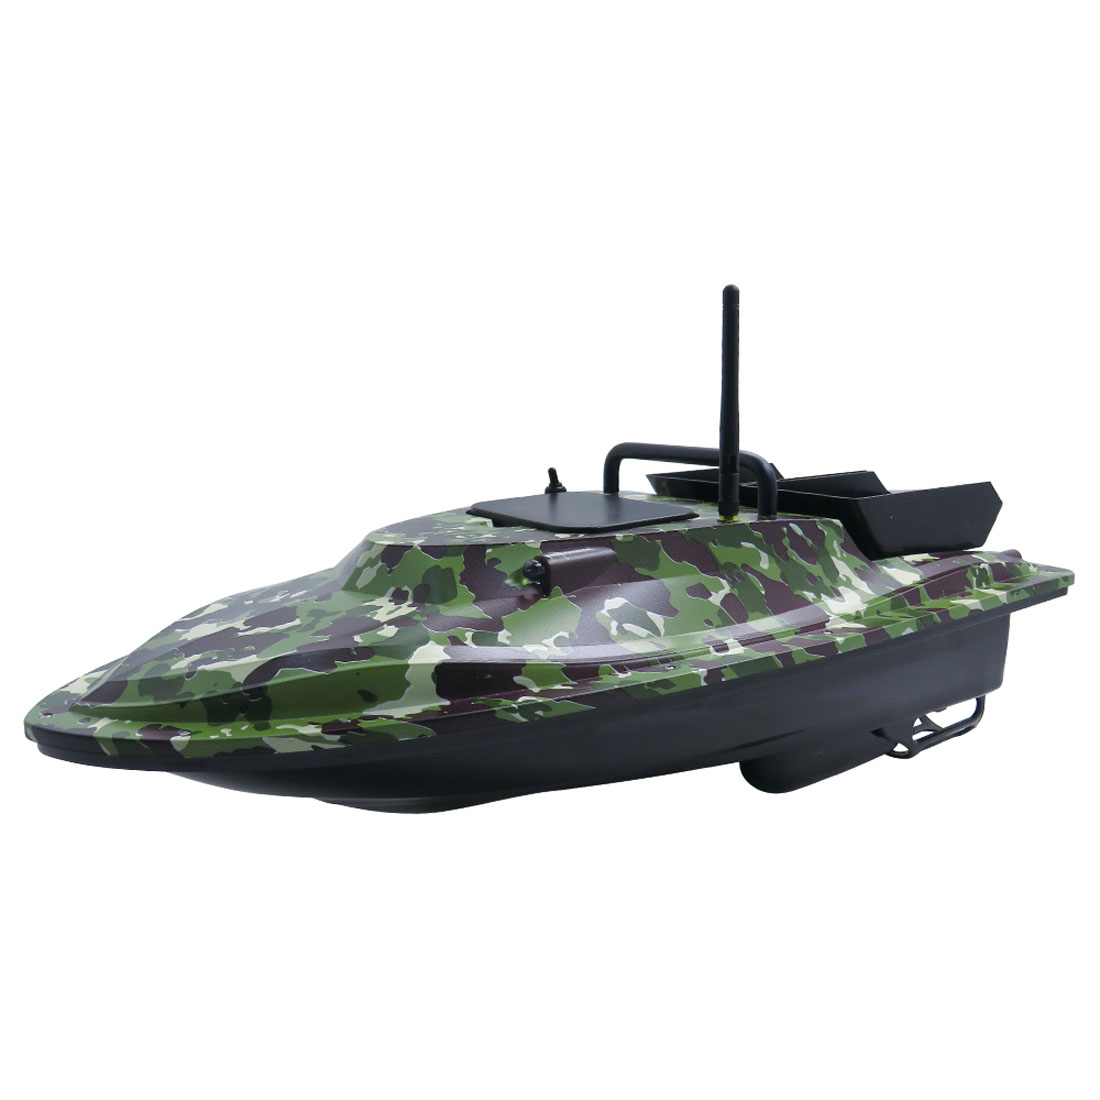 Flytec V007 Huge RC Fishing Bait Boat 500M Fishing Bait RC Boat Remote Control Ship with Light US Plug Camouflage Green - 2